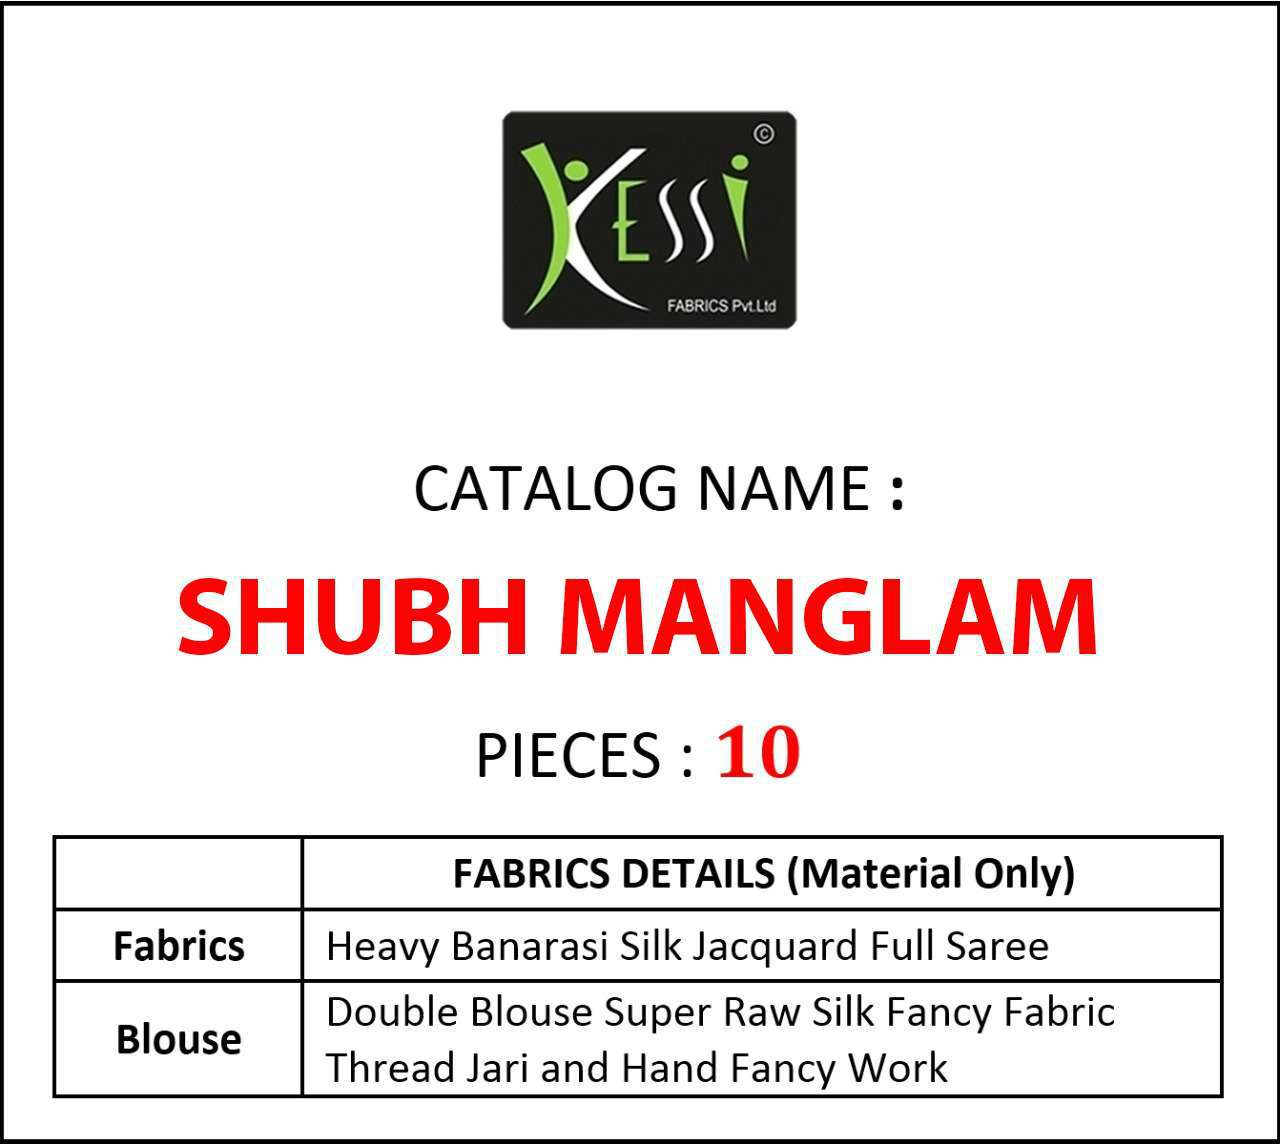 Kessi Shubh Manglam Double Blouse Saree Sari Wholesale Catalog 10 Pcs 13 - Kessi Shubh Manglam Double Blouse Saree Sari Wholesale Catalog 10 Pcs